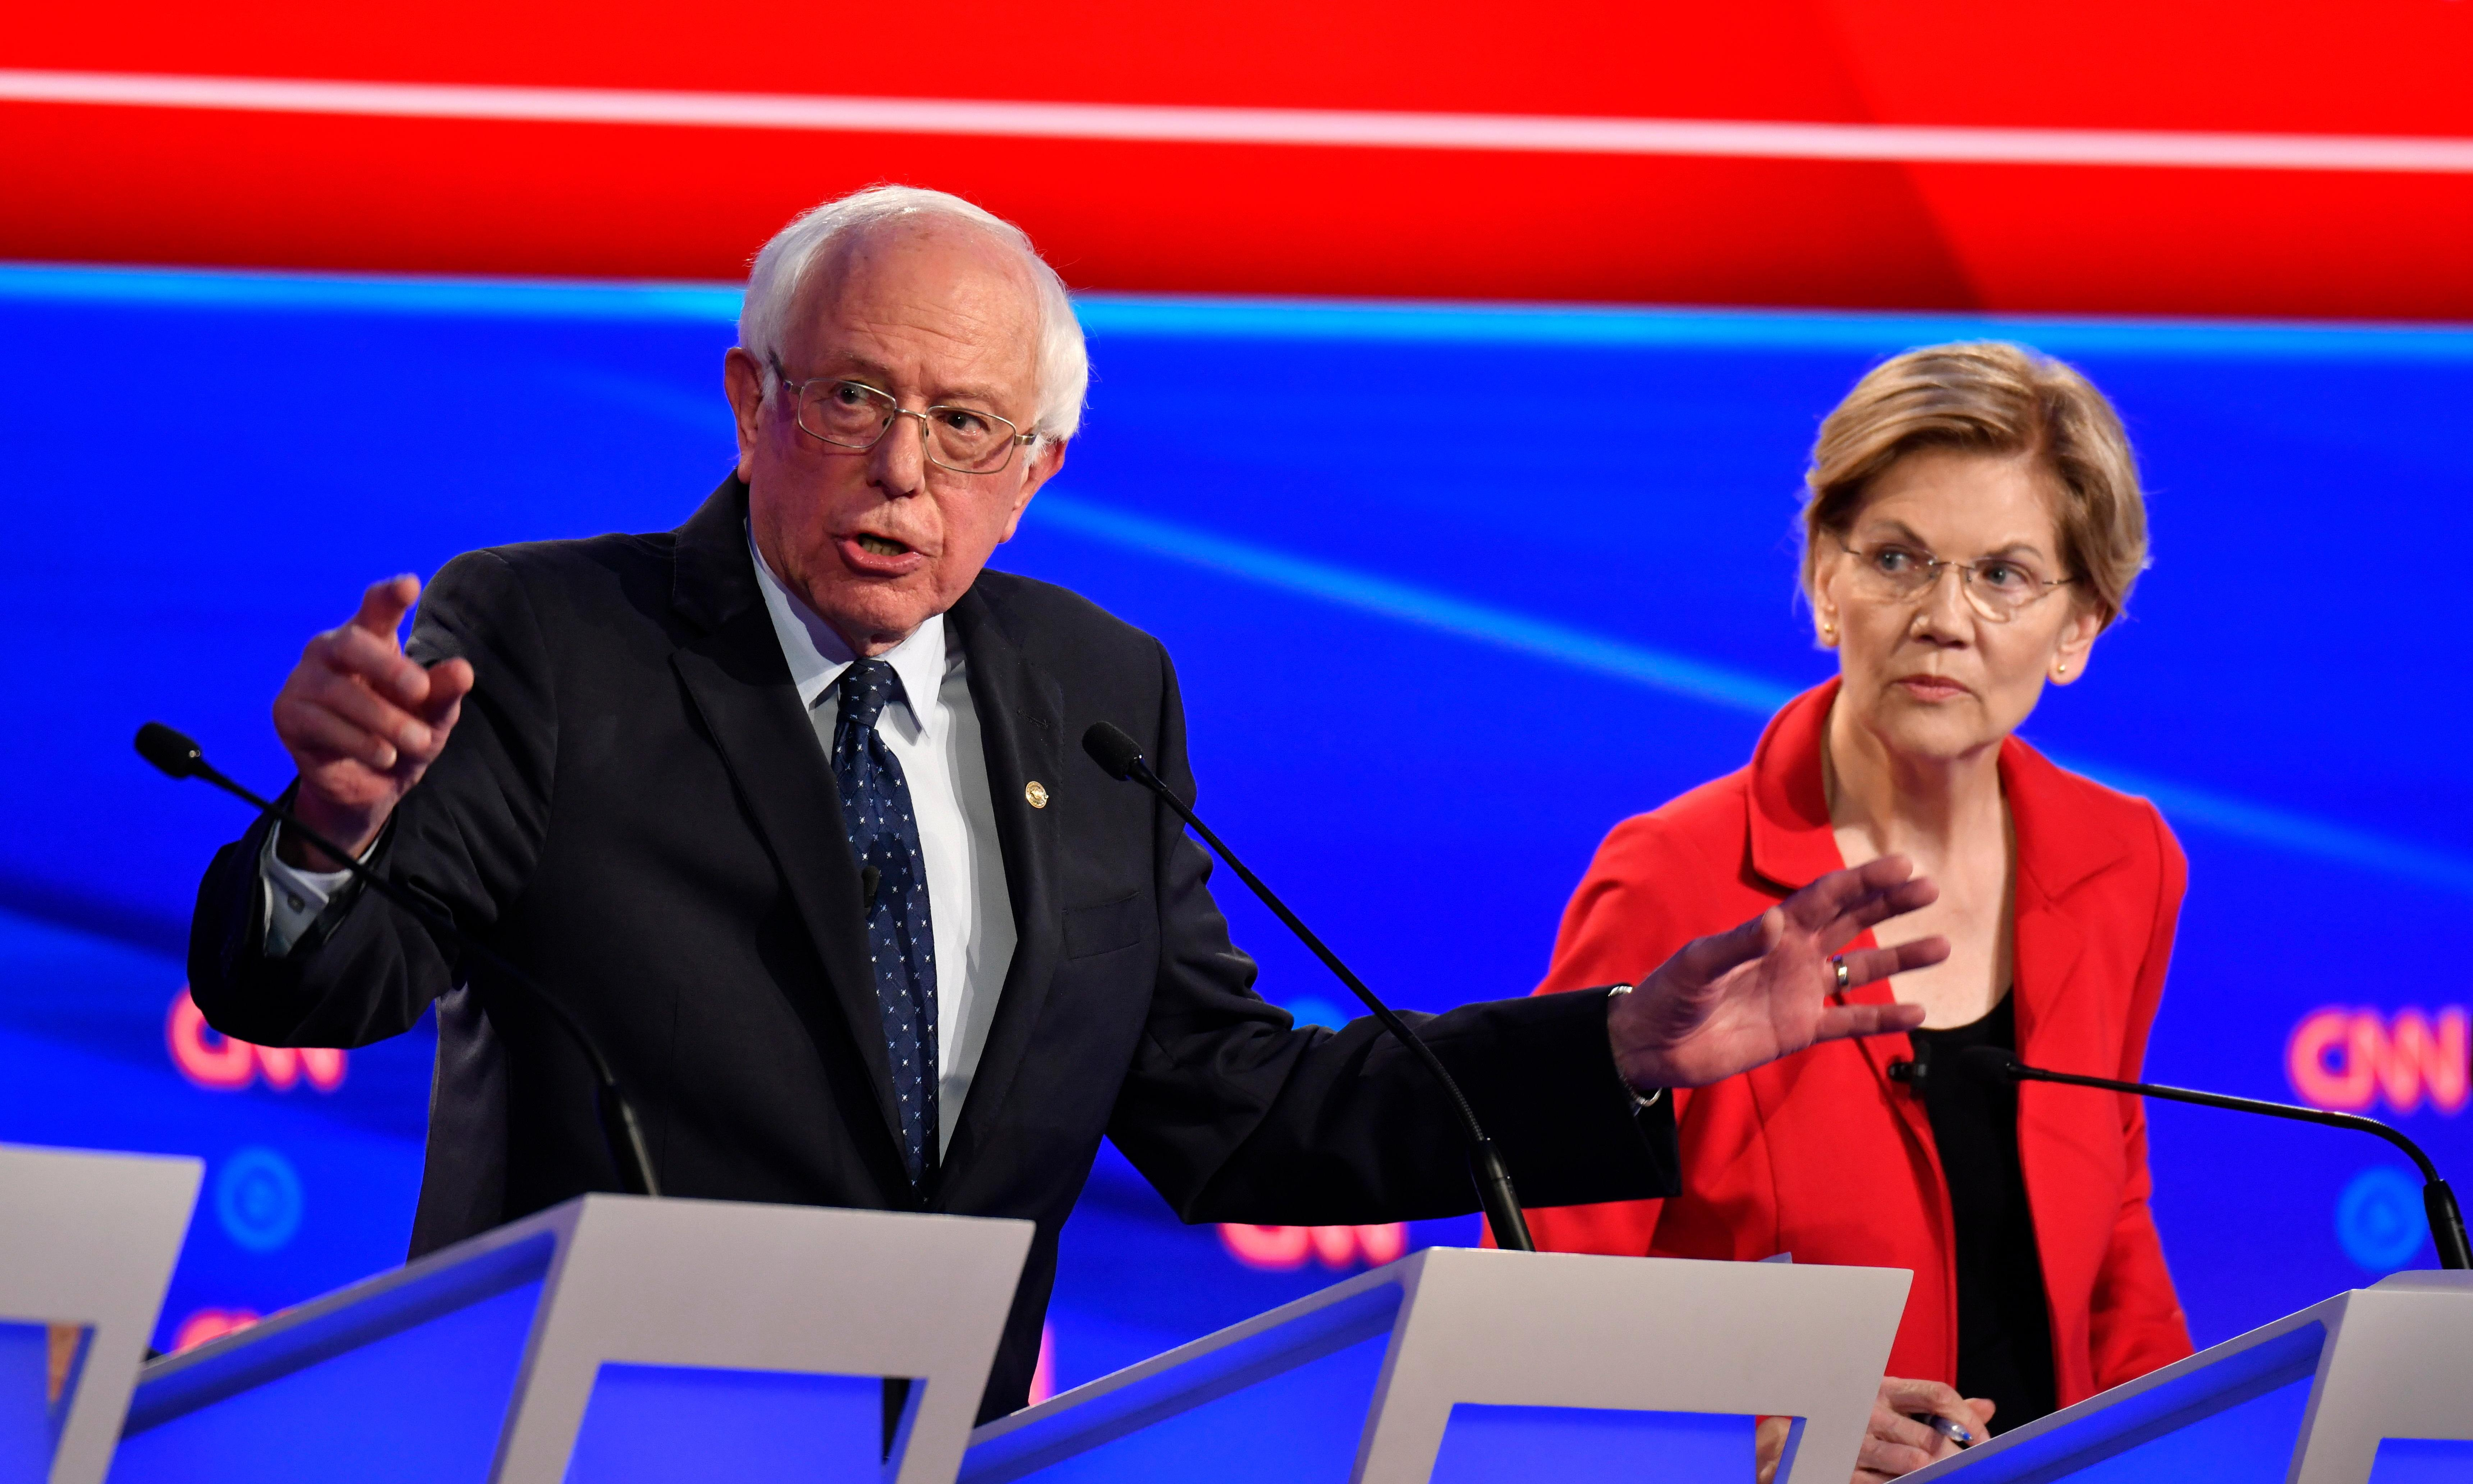 Sanders backs Warren after Liz Cheney attacks 'no first use' nuclear policy